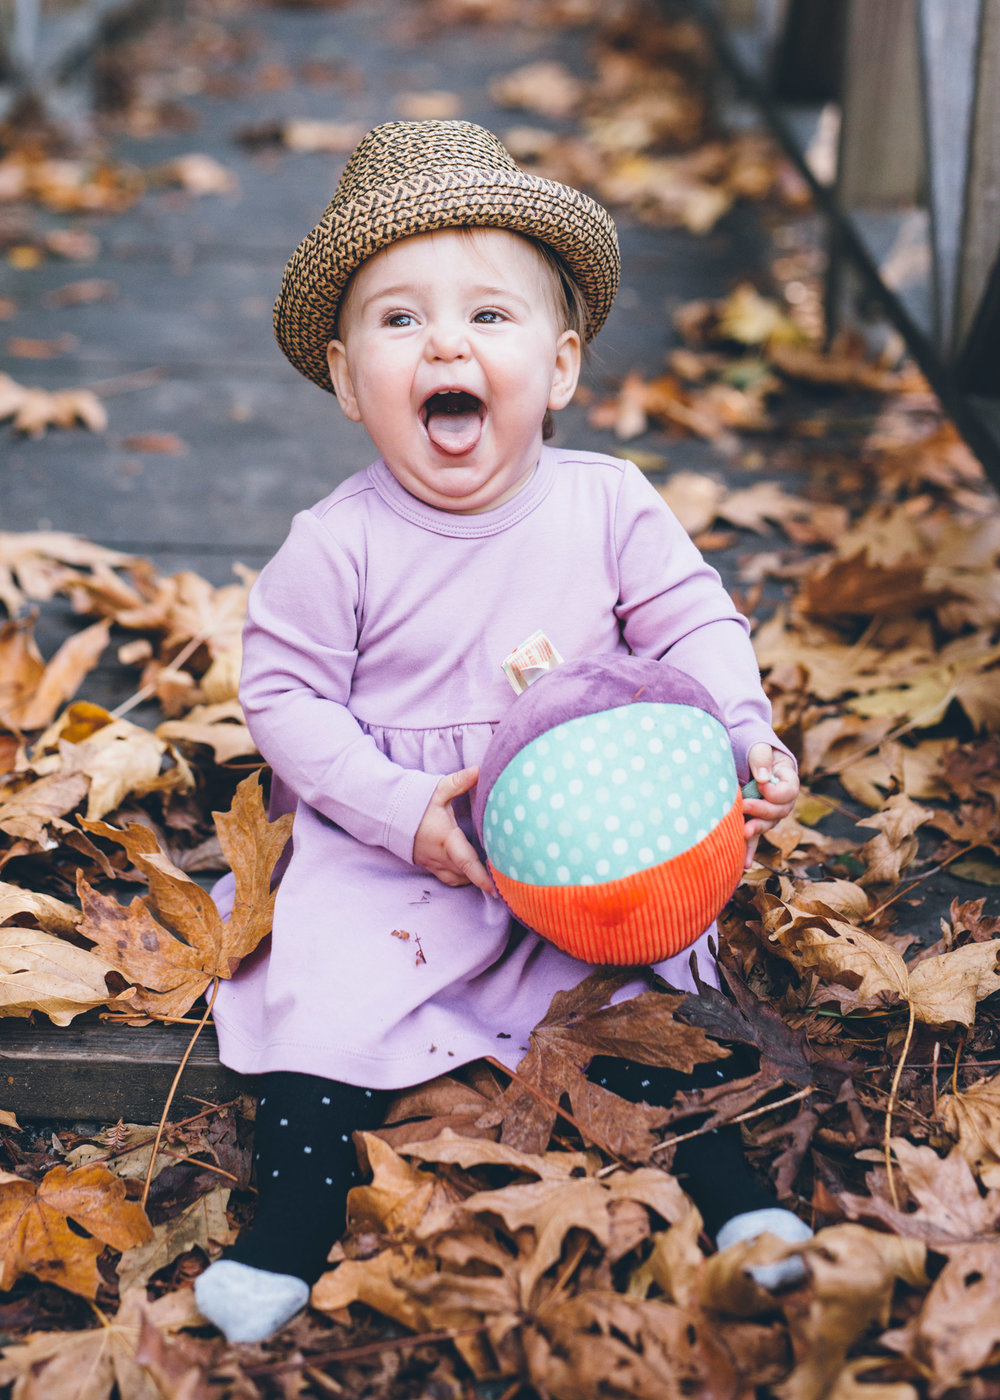 baby-wearing-a-hat-and-smiling-huge-with-a-ball-in-hands.jpg